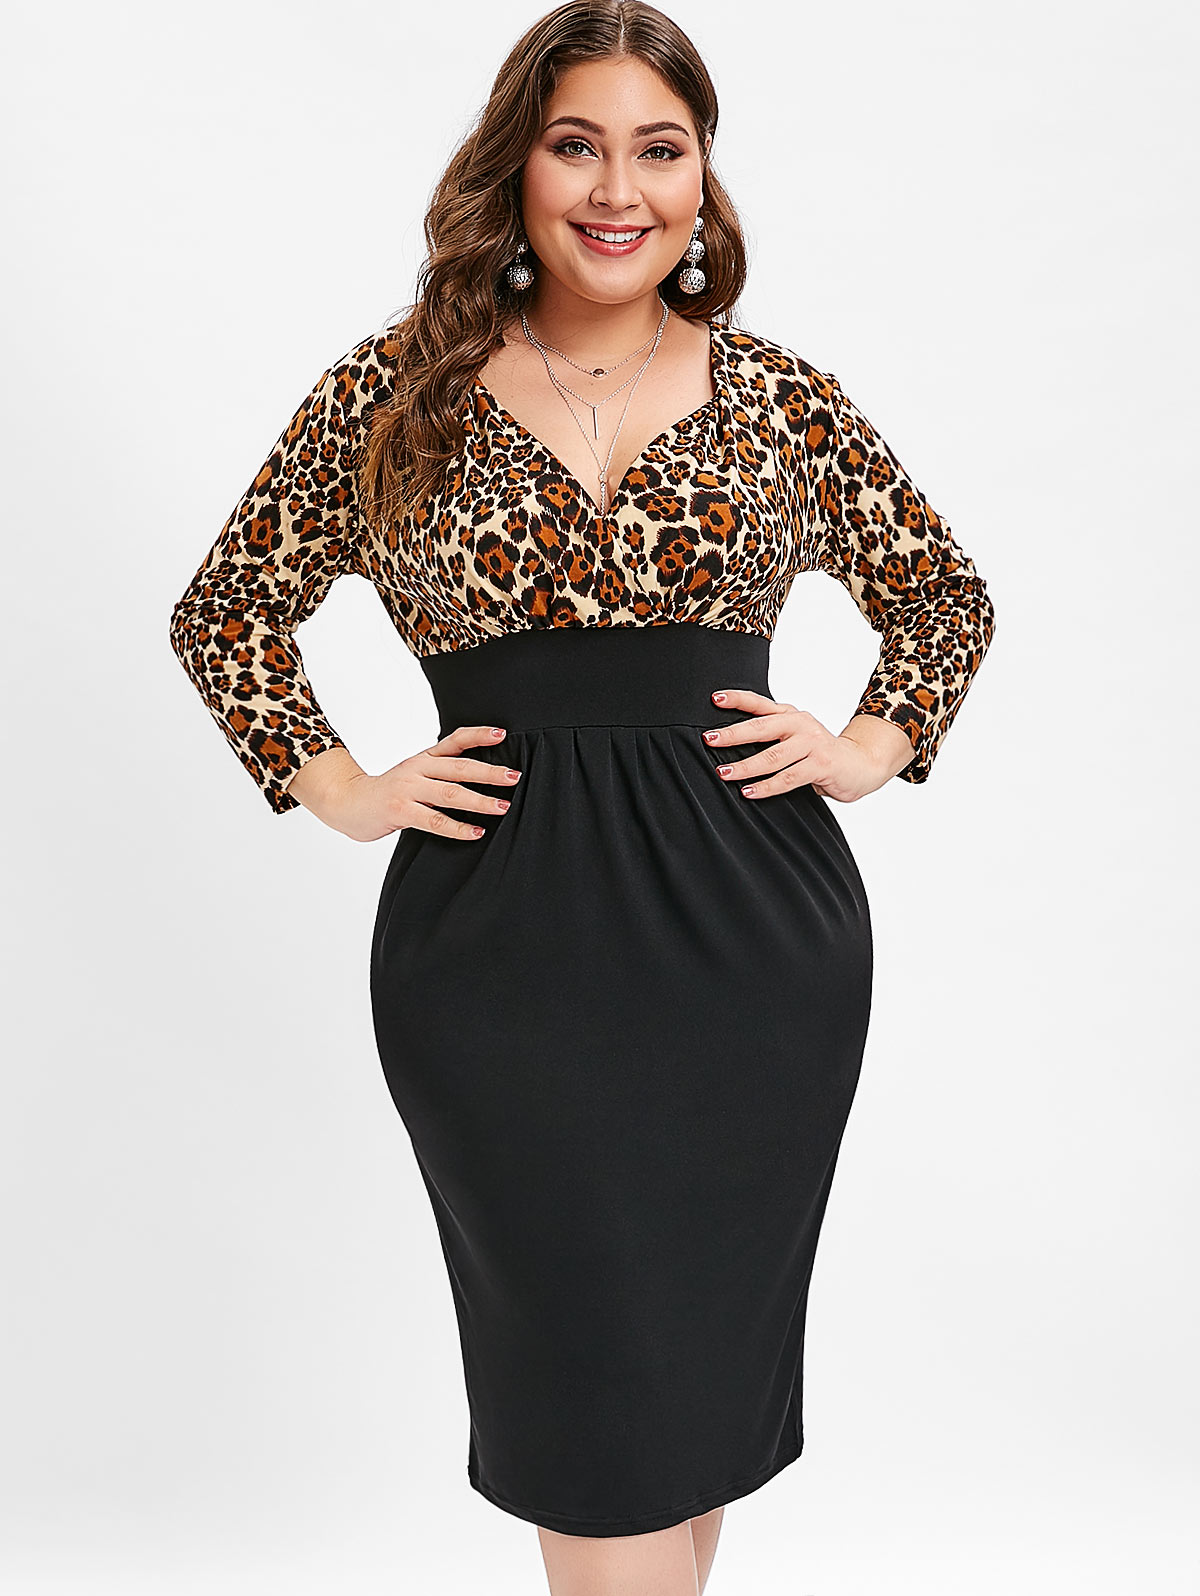 893764b4f3a65 Wipalo Women Plus Size Leopard Print Plunging Neck Dress Long Sleeves  Knee-Length Bodycon Club Party Dress 5XL Spring Vestidos